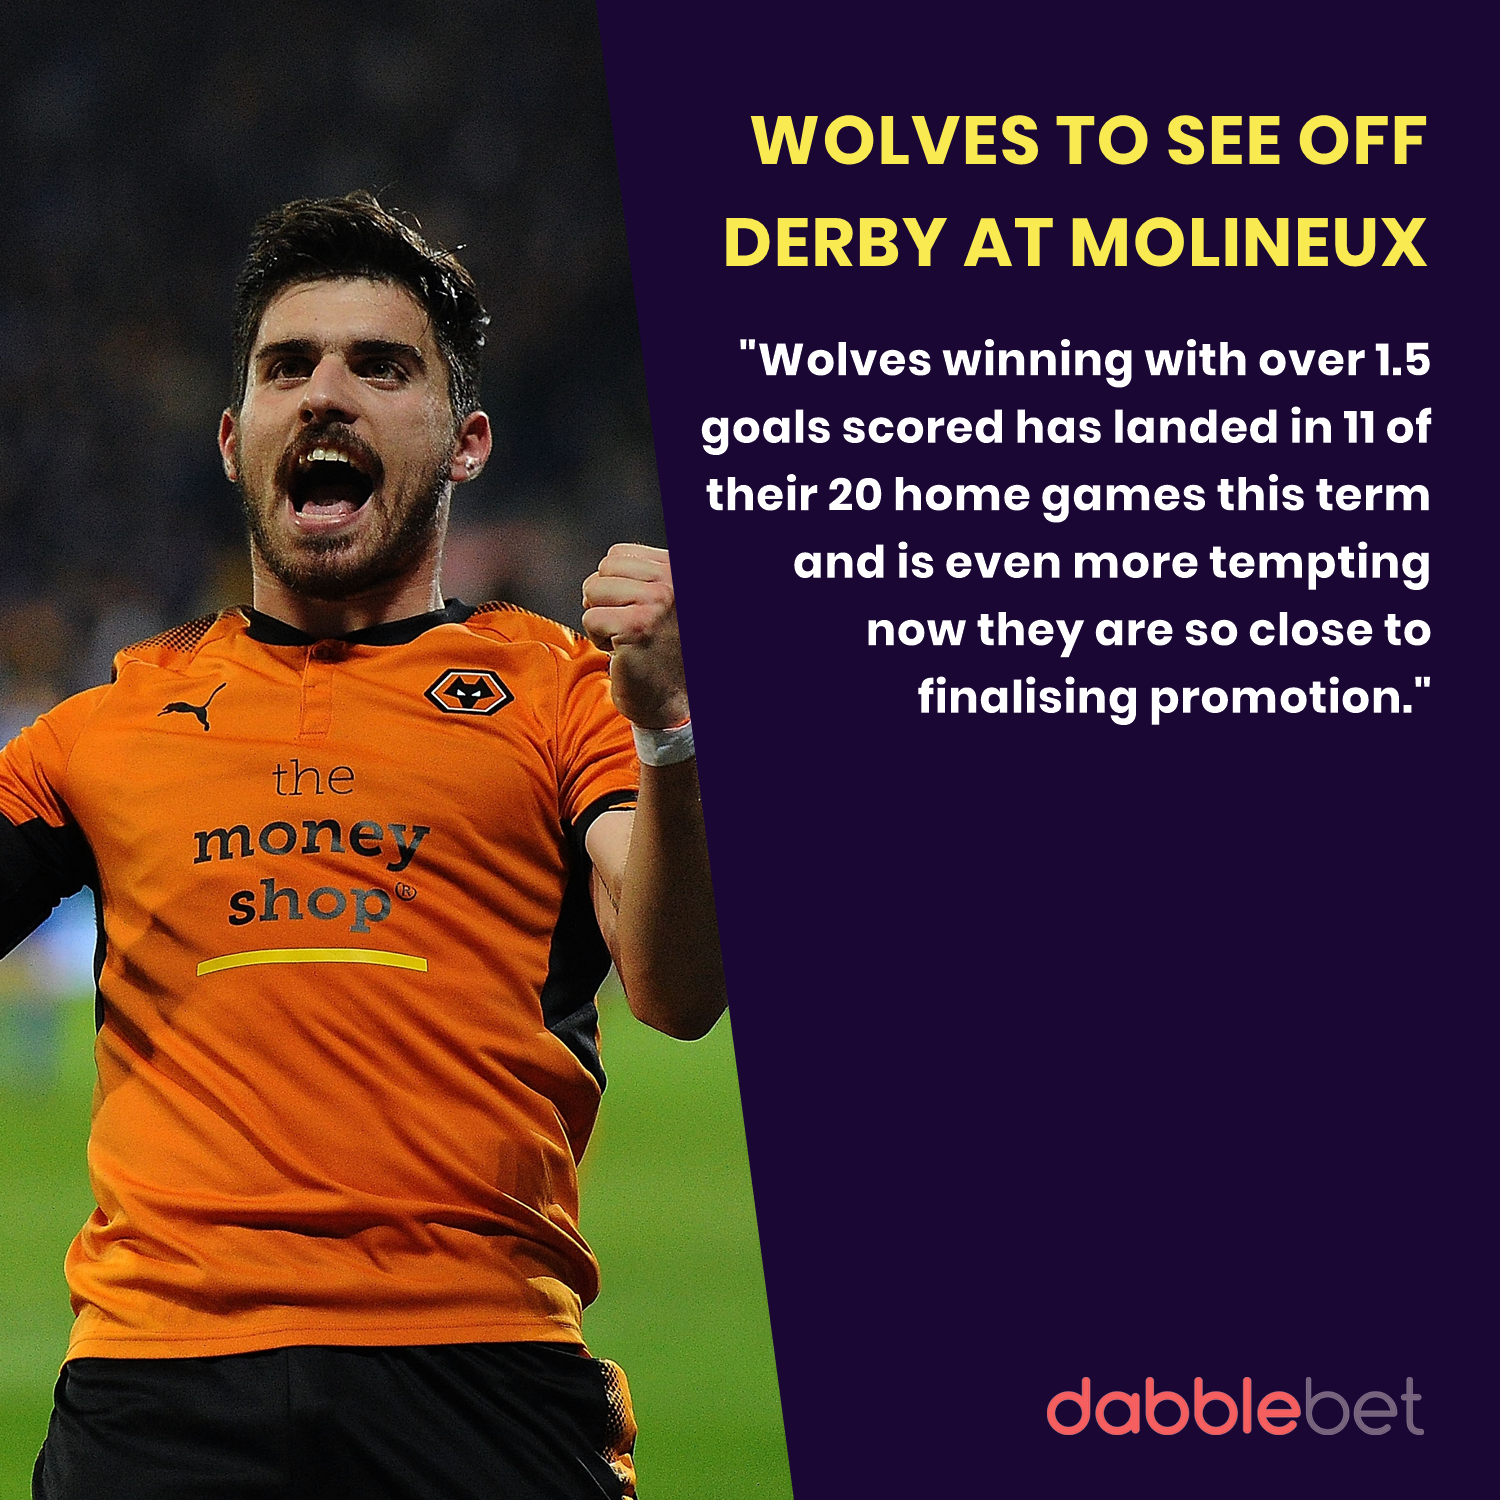 Wolves Derby graphic